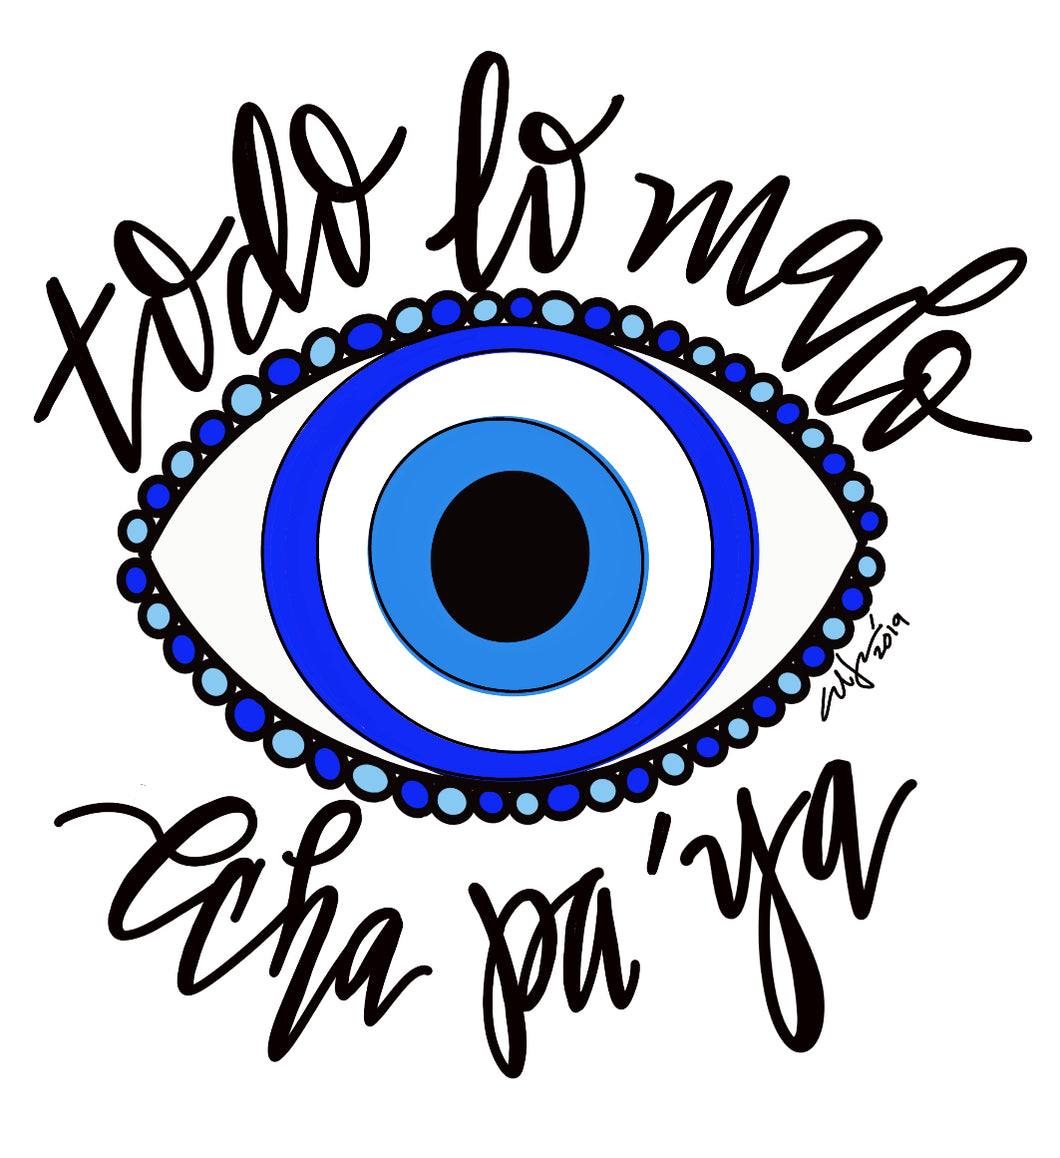 Todo lo malo echa pa ya...Digital Artwork